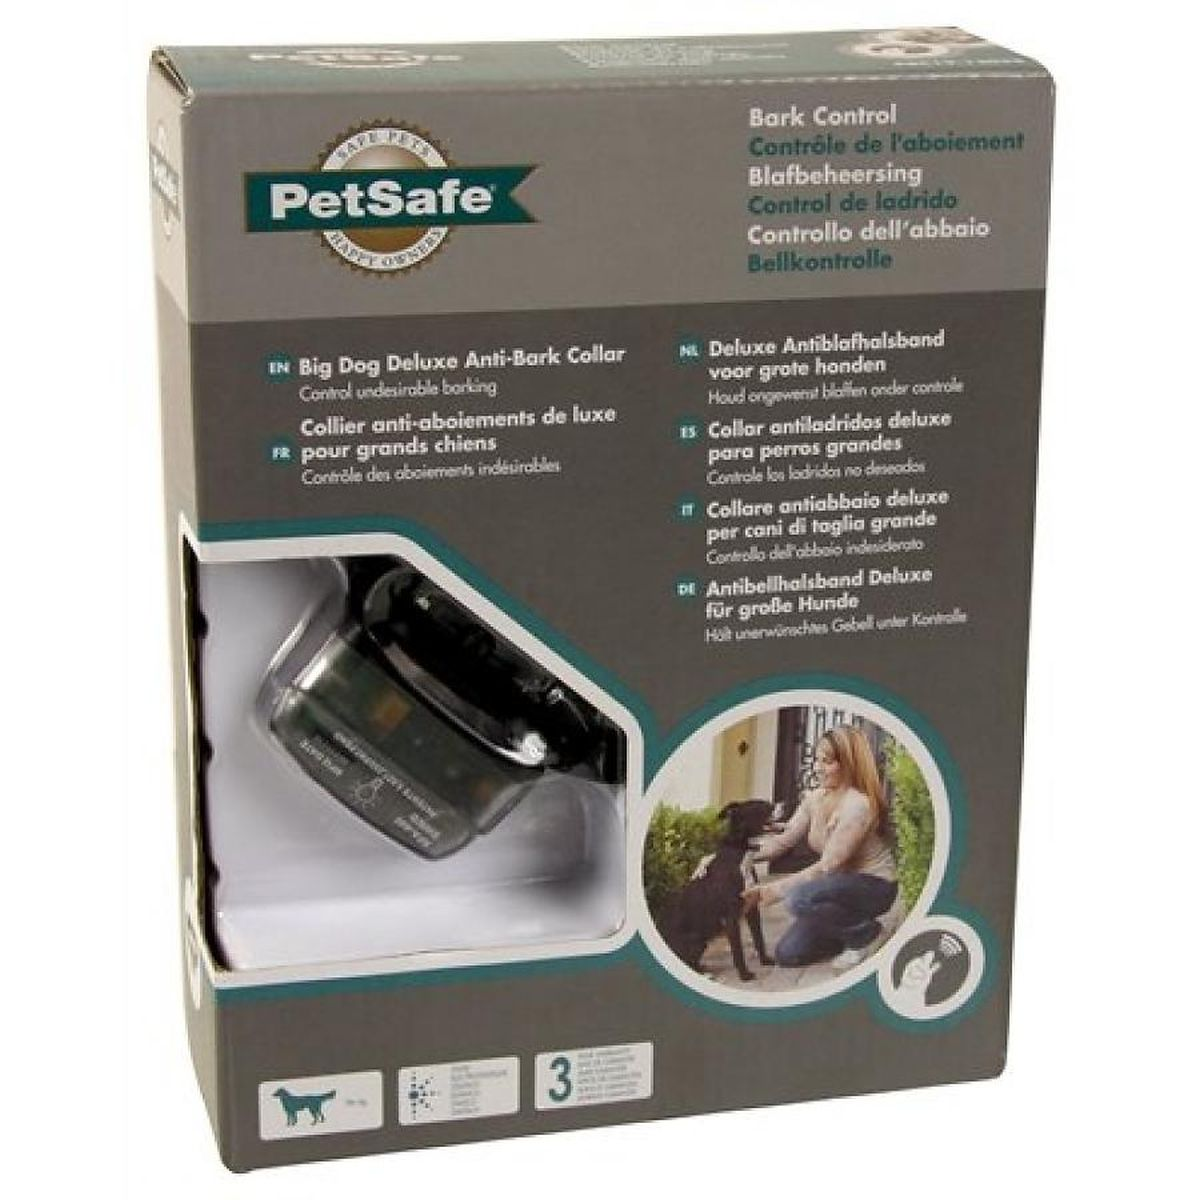 PS DELUXE ANTIBLAFB GROTE HOND N 00001